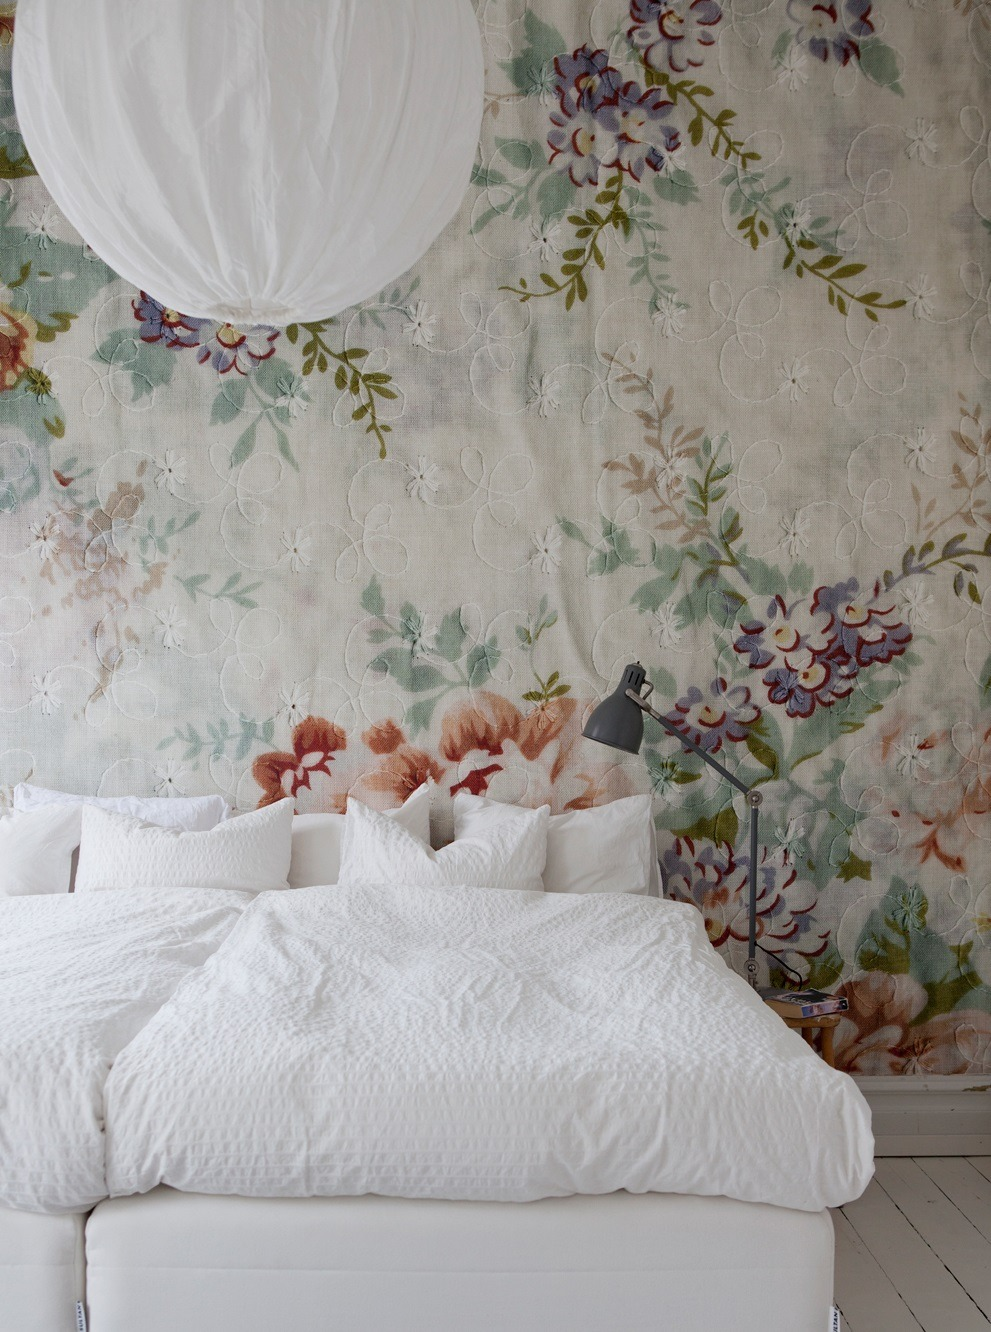 The Nordroom - Creative Headboard and Bedroom Styling Ideas (Source: Bolaget)